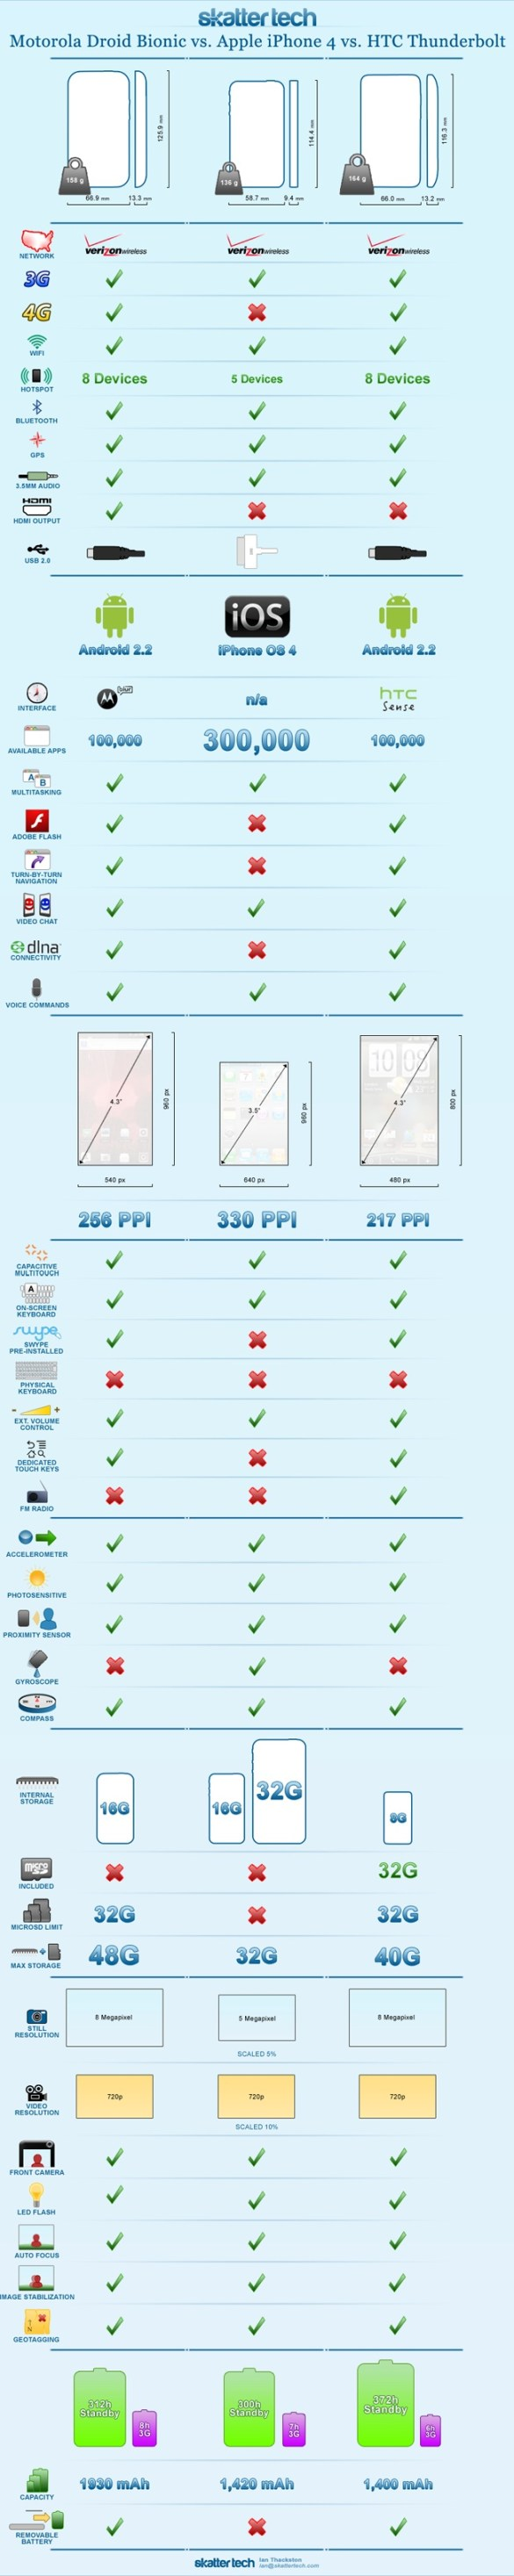 Motorola Droid Bionic vs. HTC Thunderbolt Vs. iPhone 4 Infographic